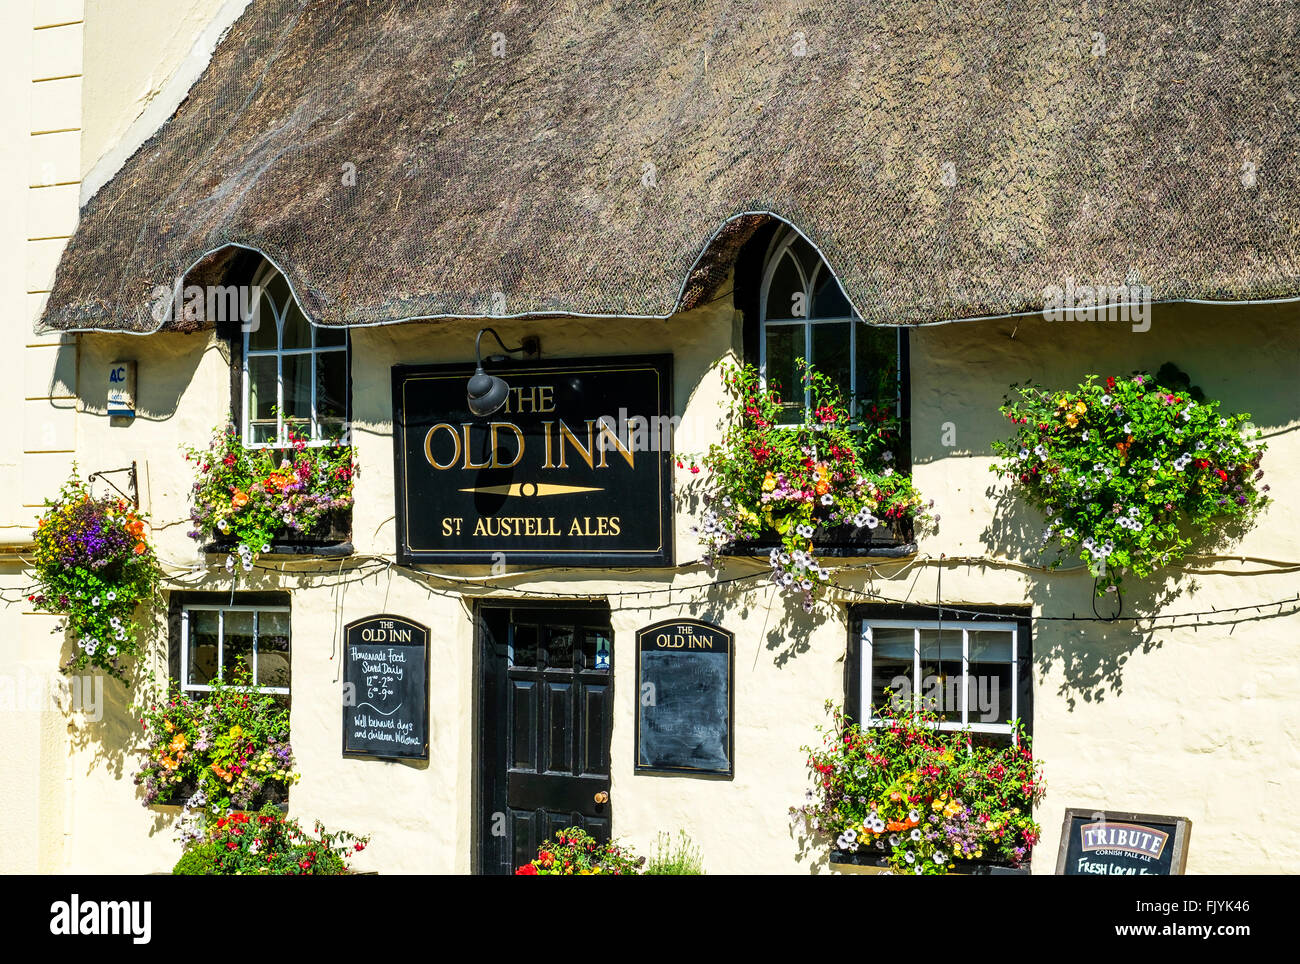 The Old Inn at Mullion in Cornwall, UK - Stock Image